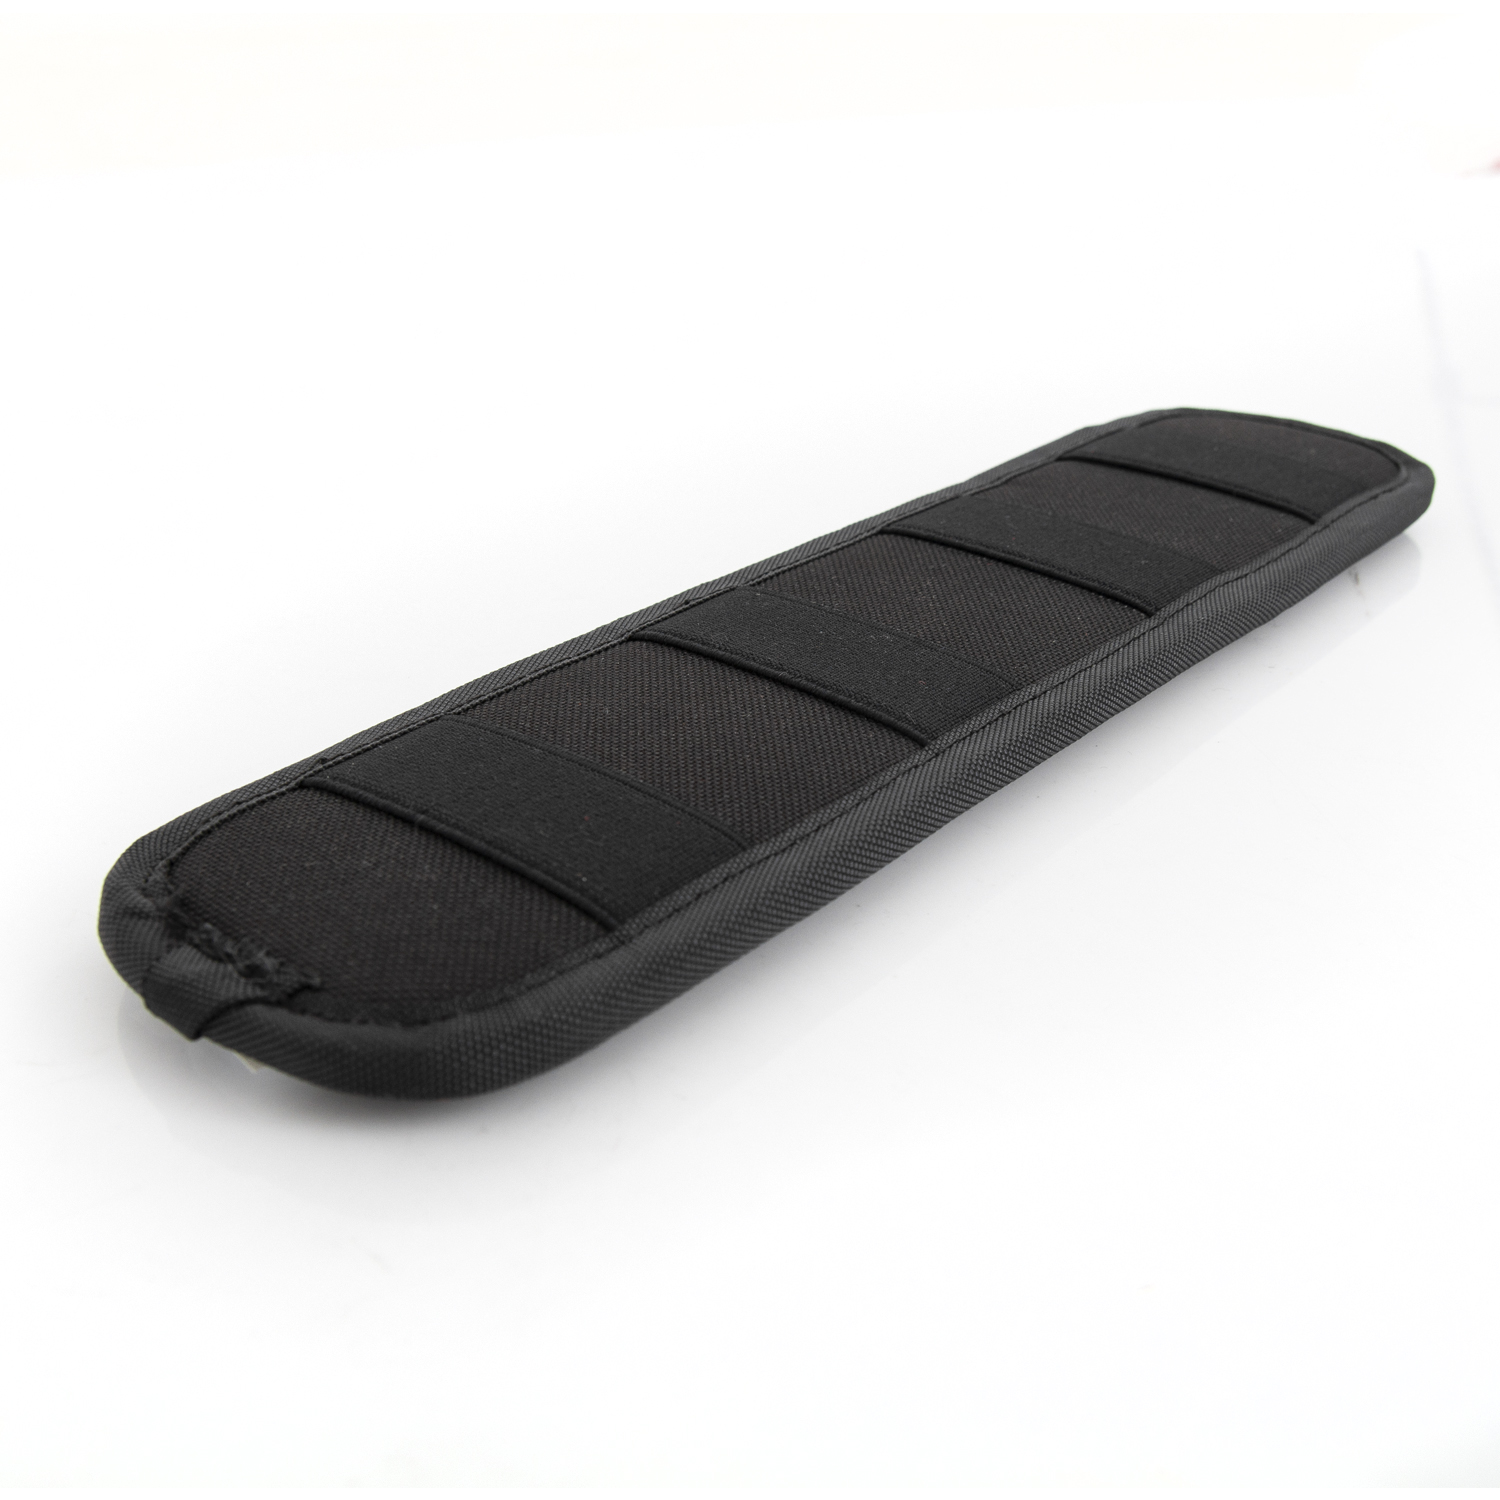 Dynamic relieving pad for safety belts FP-A-2